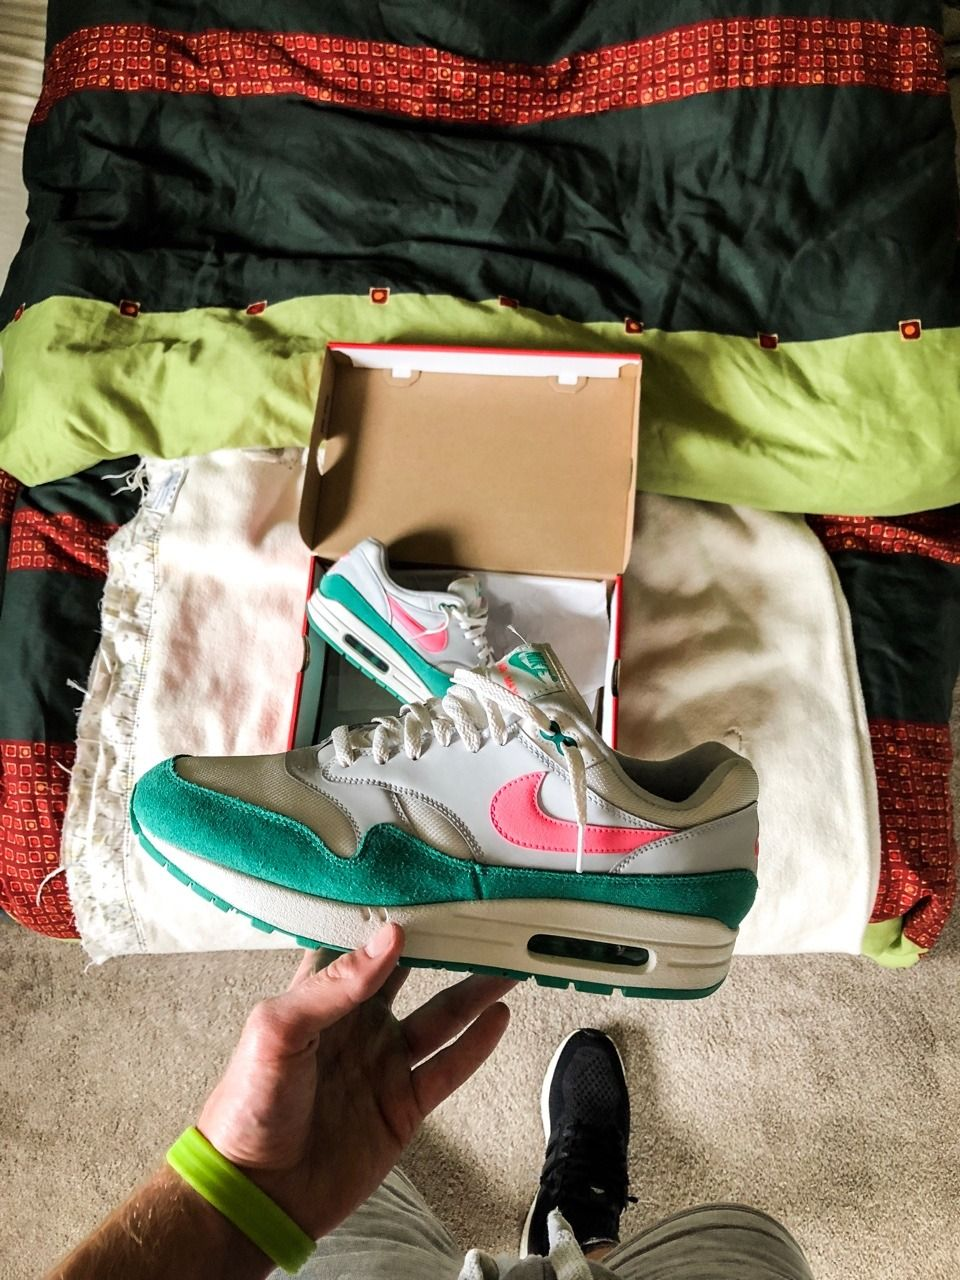 """311f16bd44 snkrwrld: """" LPU The Nike Air Max 1 """"Watermelon"""" looks so fresh 🍉💦 Do you  like it or not? Tell me why ⁉ """""""